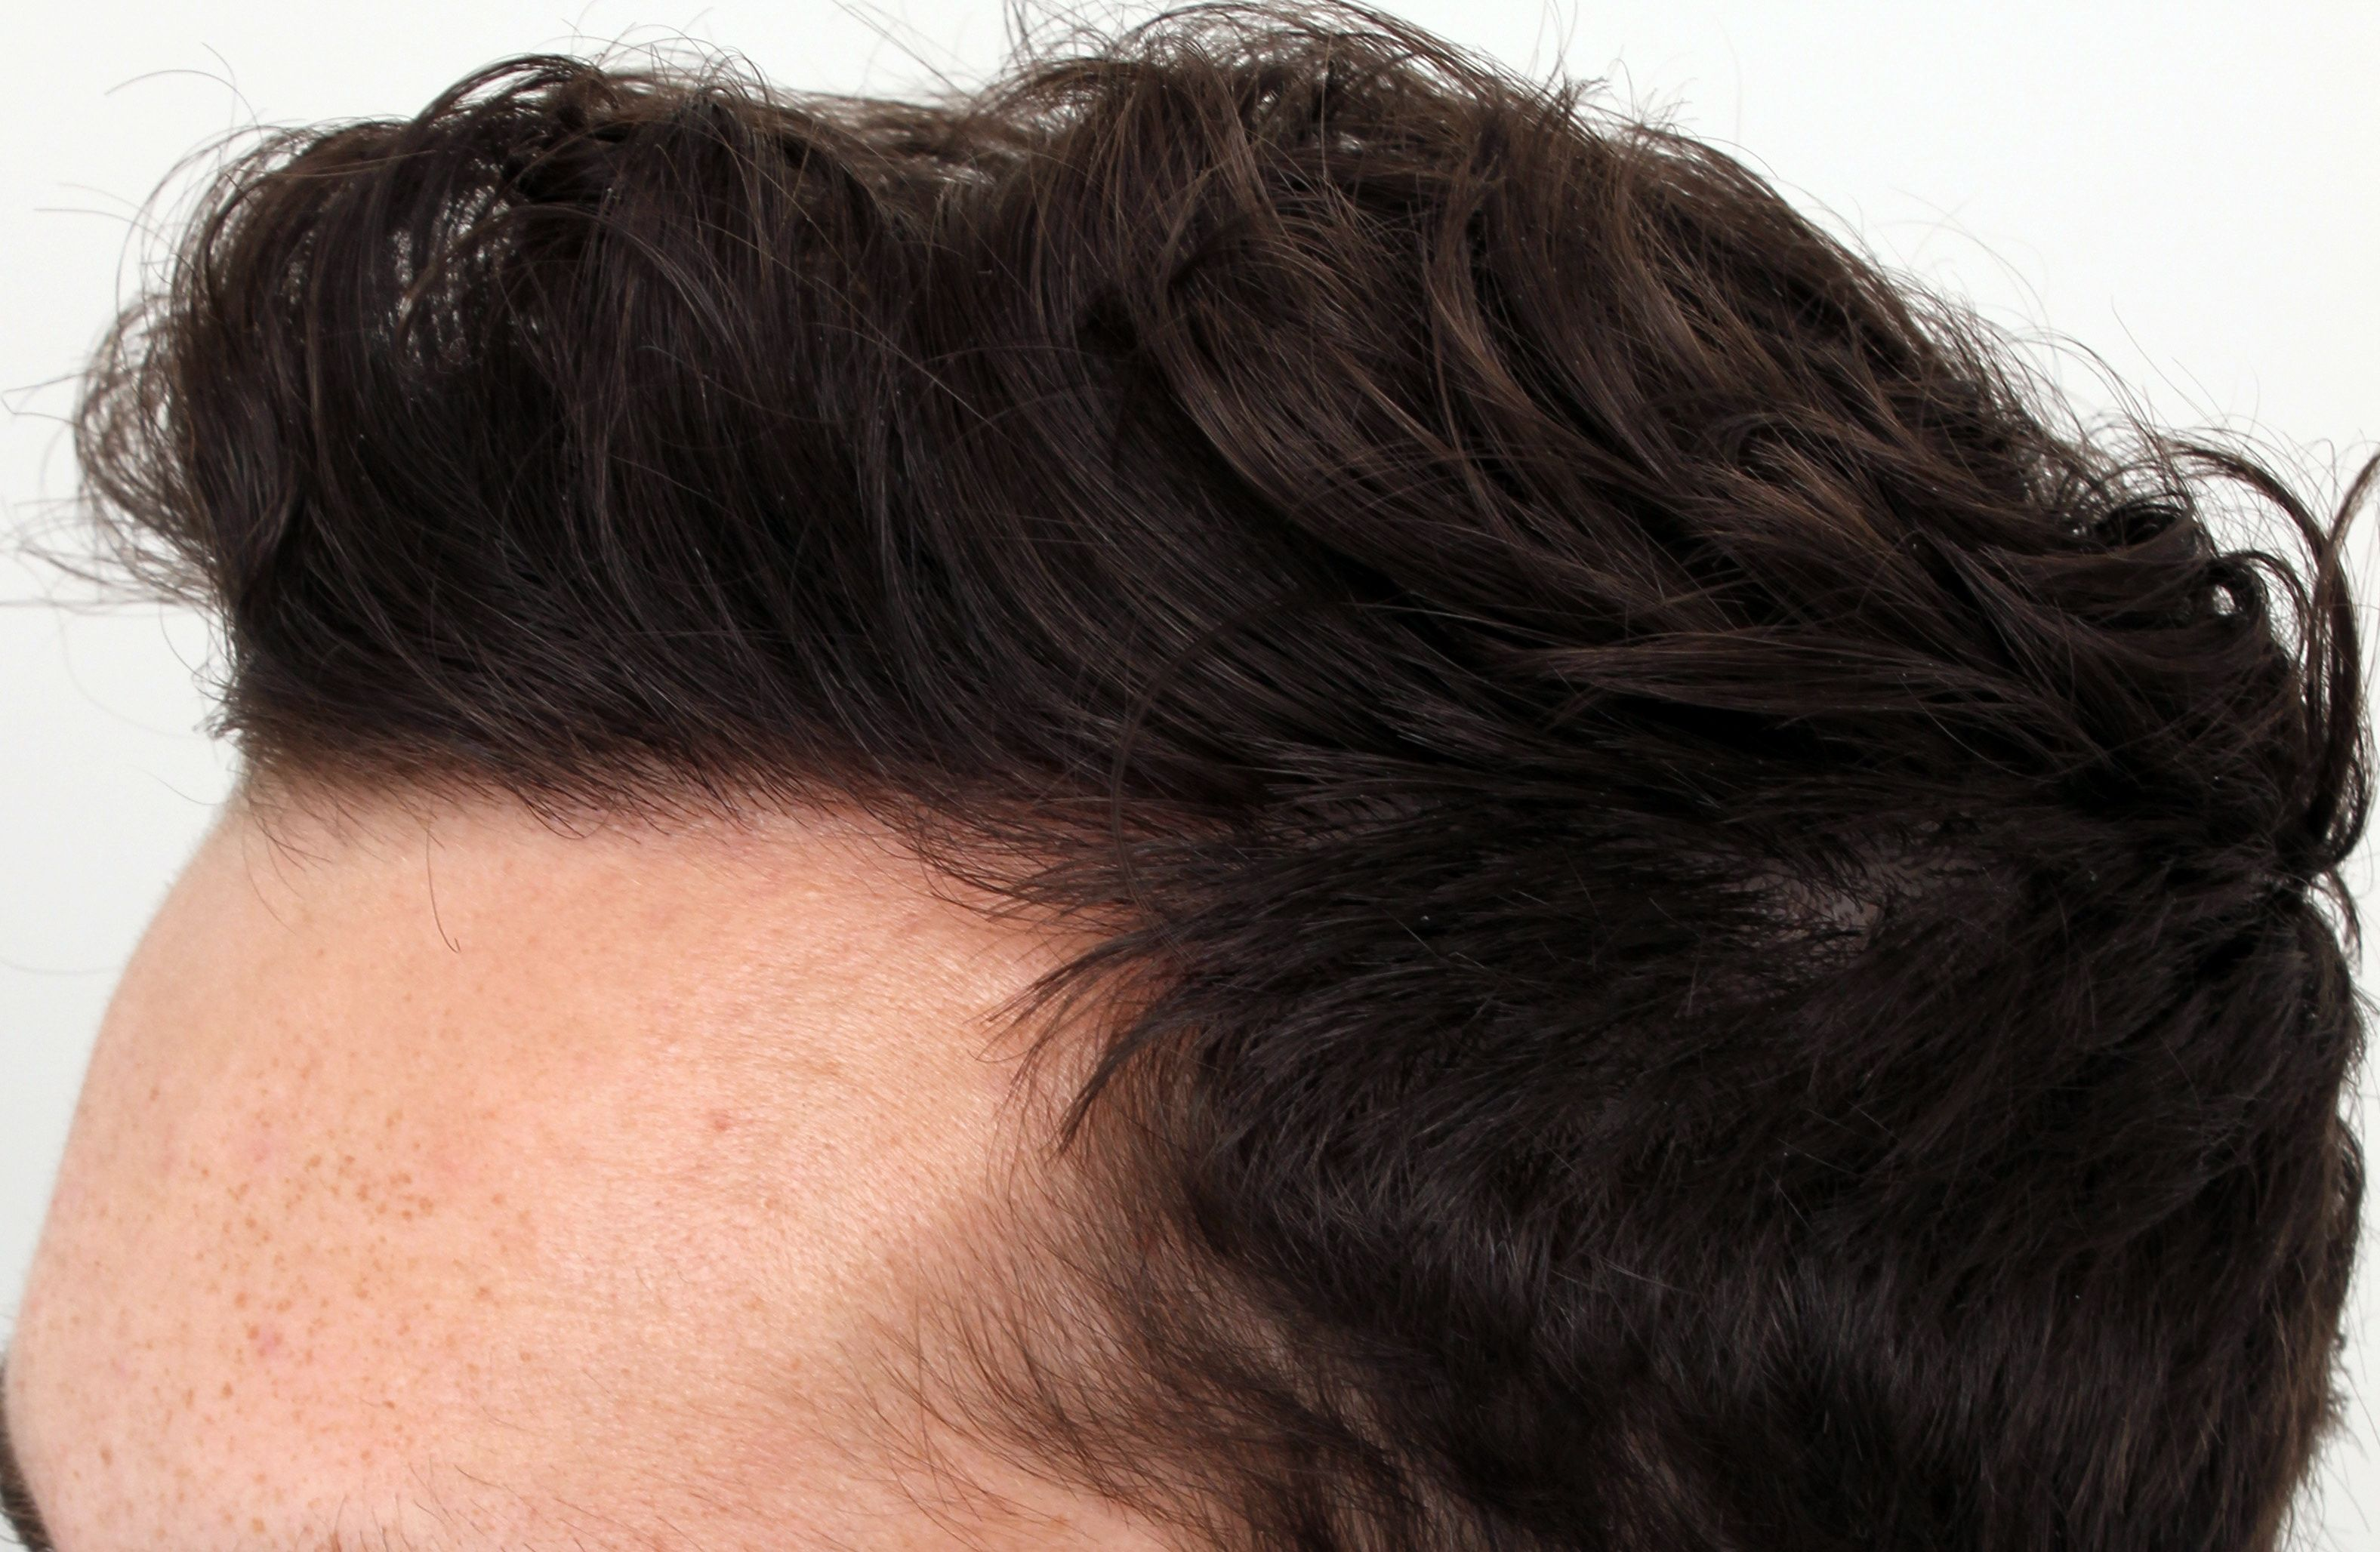 Doctor examining male patient's hairline